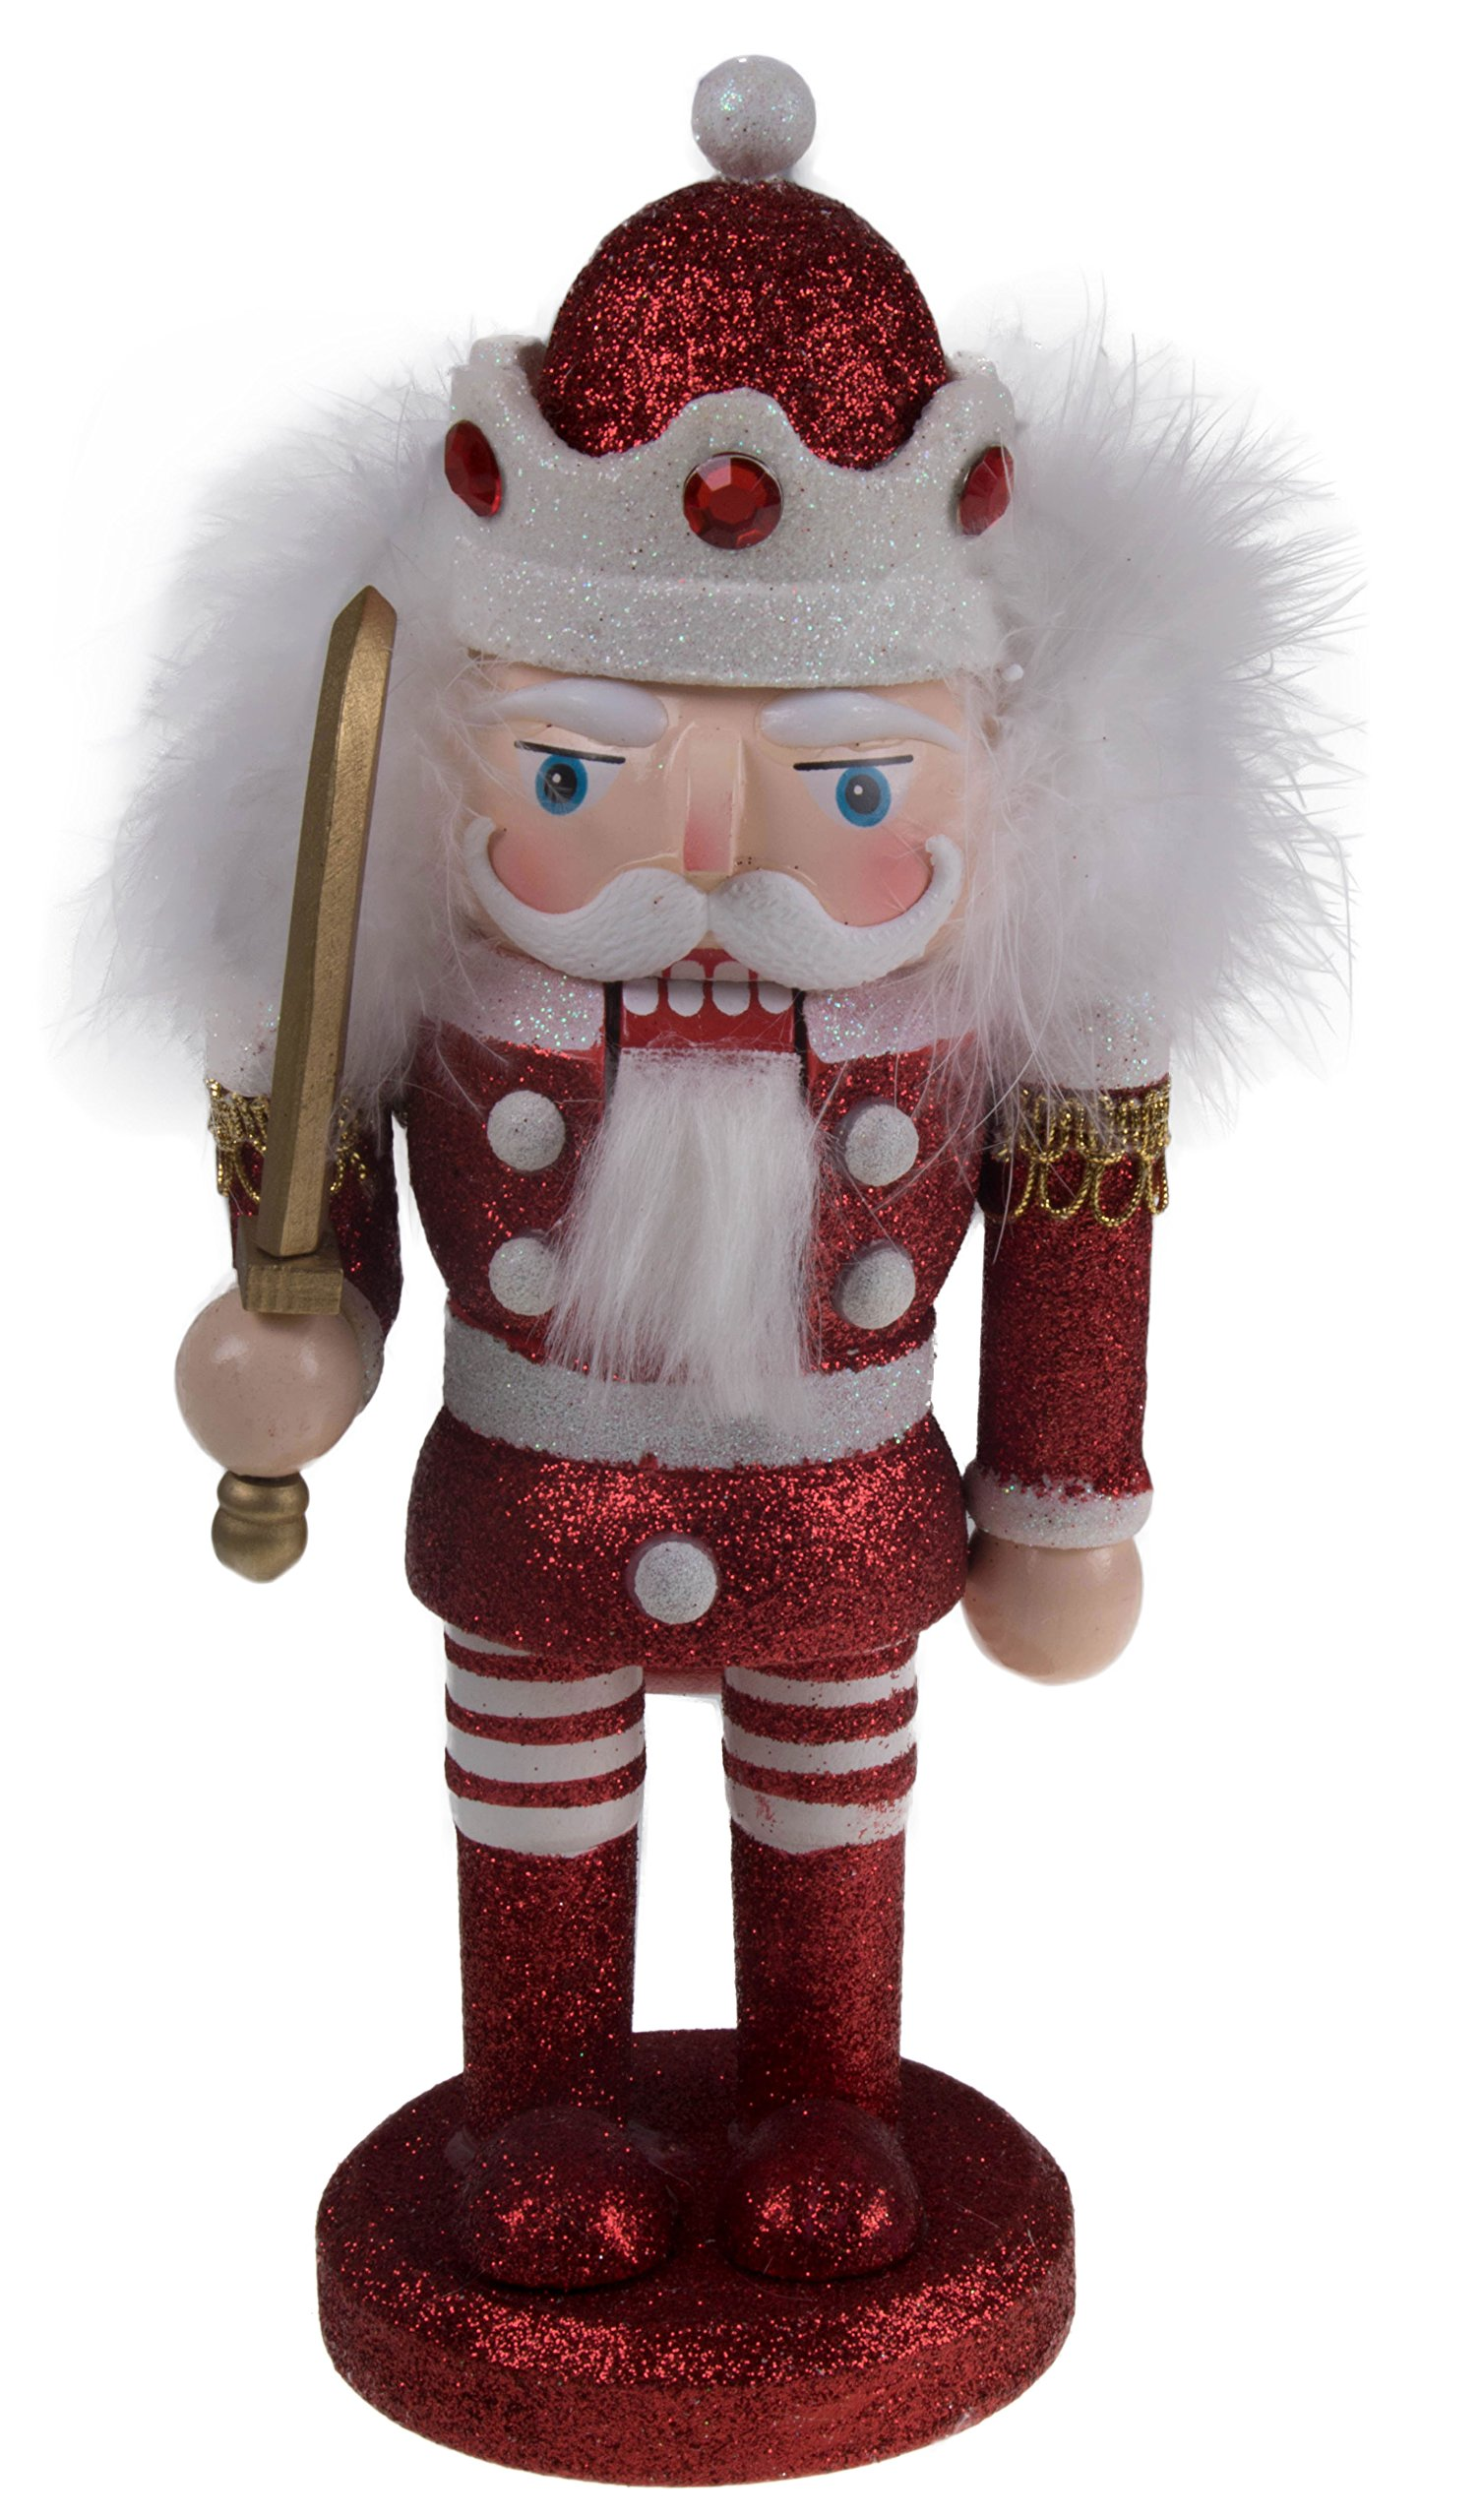 Clever Creations Chubby Style King Nutcracker | Glitter Uniform | Festive Collectible Wooden Christmas Nutcracker | 100% Wood | 10'' Tall | Red/White